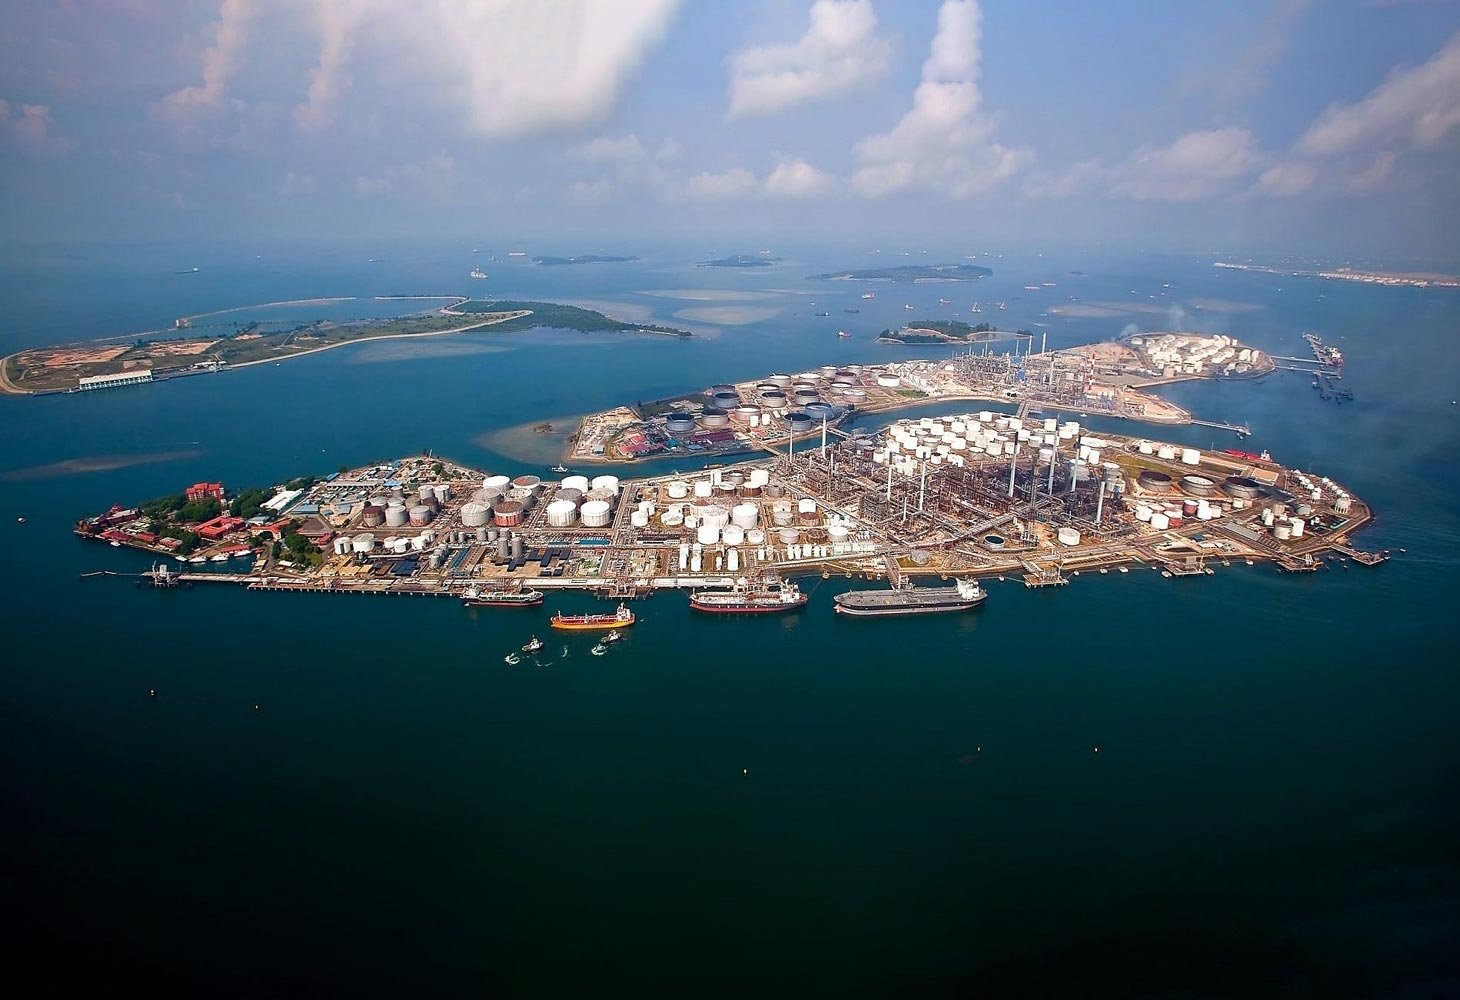 shell-singapore-to-close-group-i-base-oil-refinery-in-july-2022